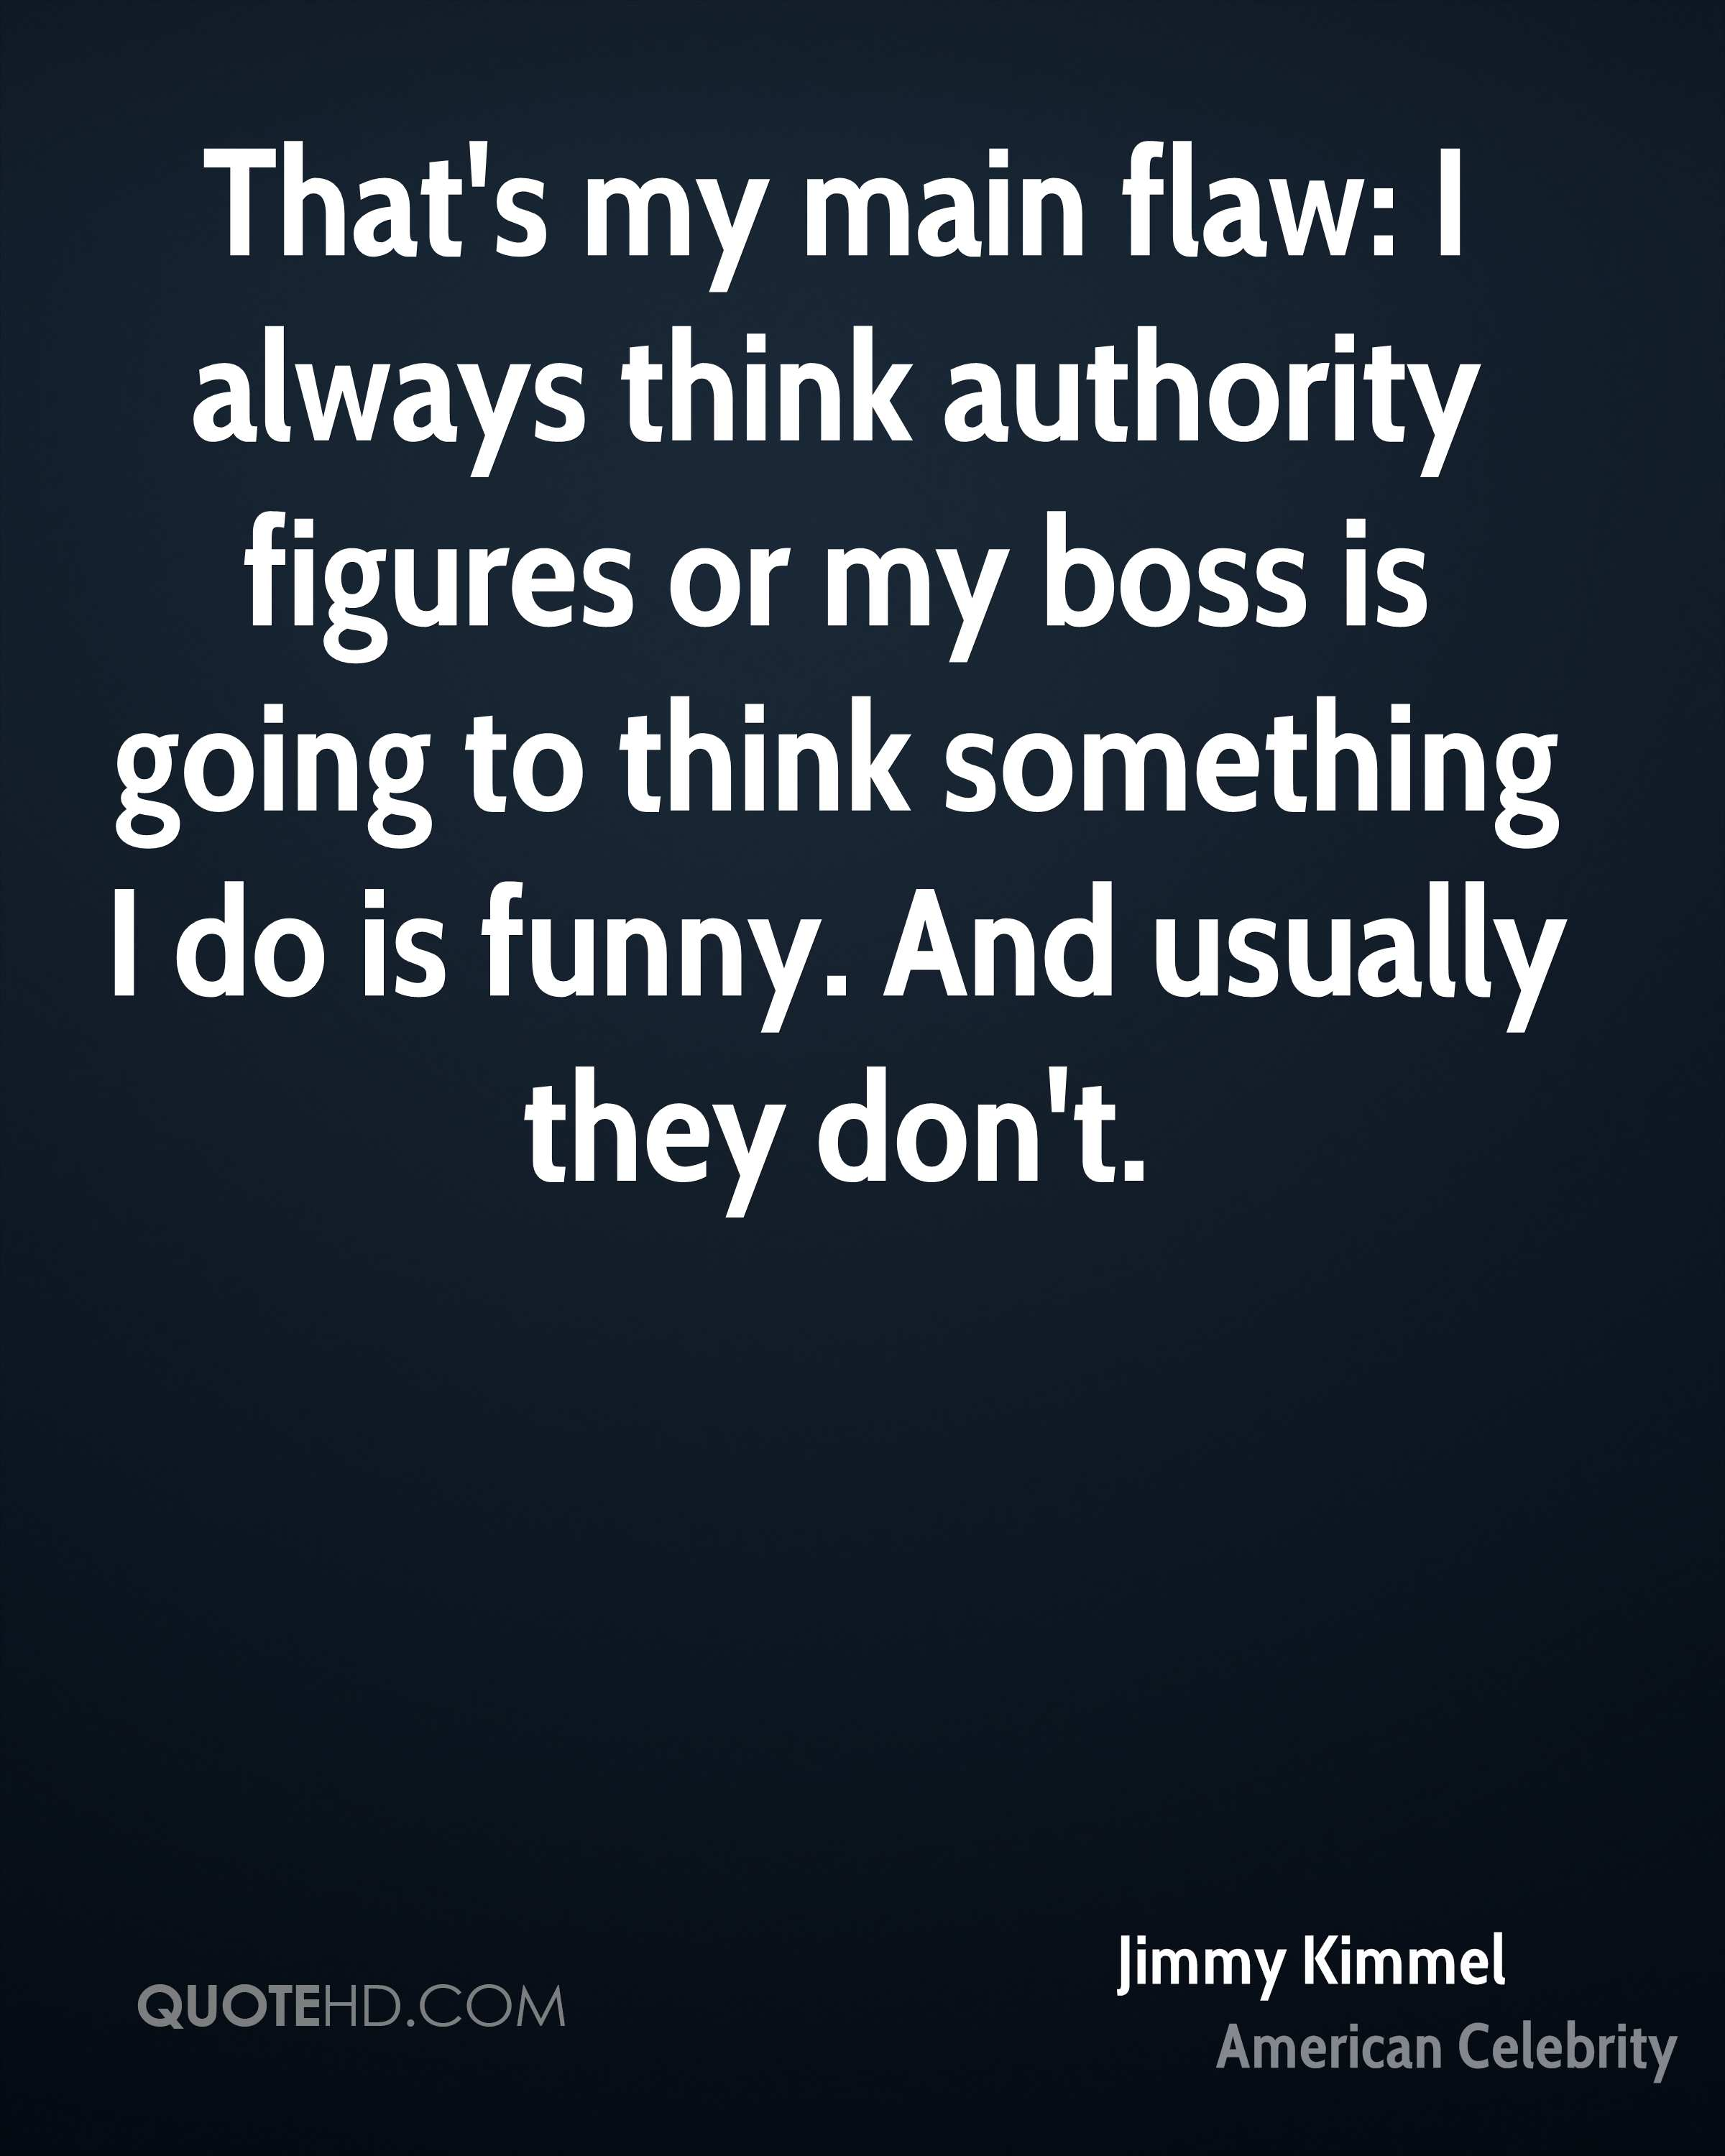 That's my main flaw: I always think authority figures or my boss is going to think something I do is funny. And usually they don't.